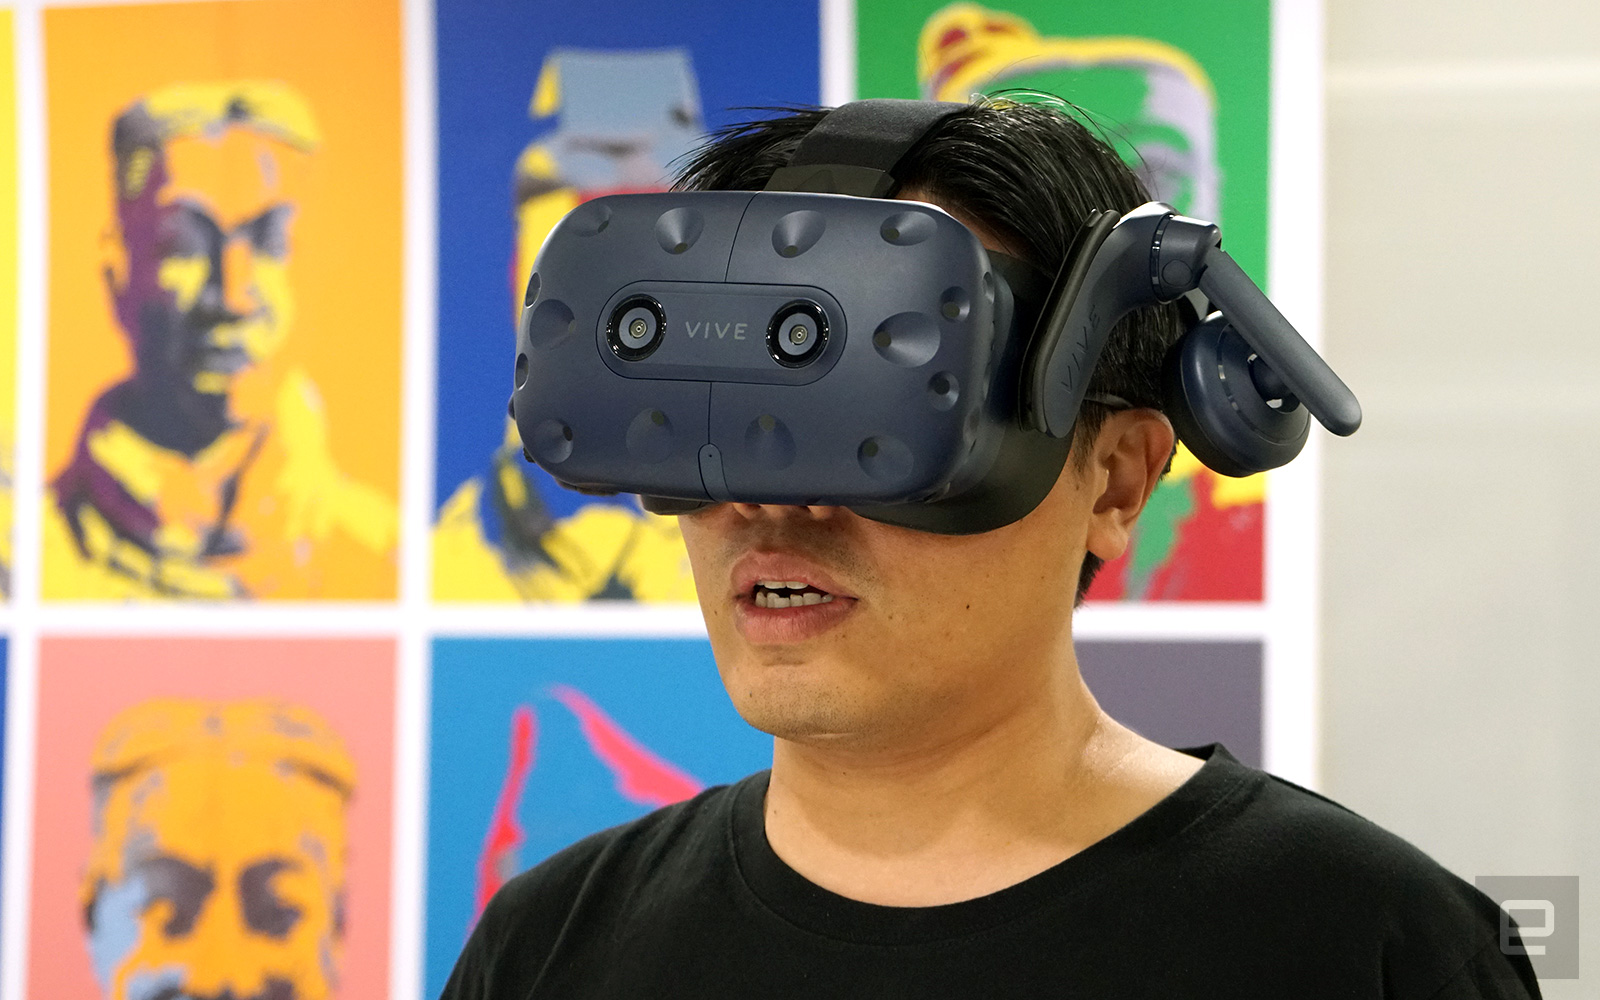 HTC Vive Pro's dual cameras can apparently track hand motion